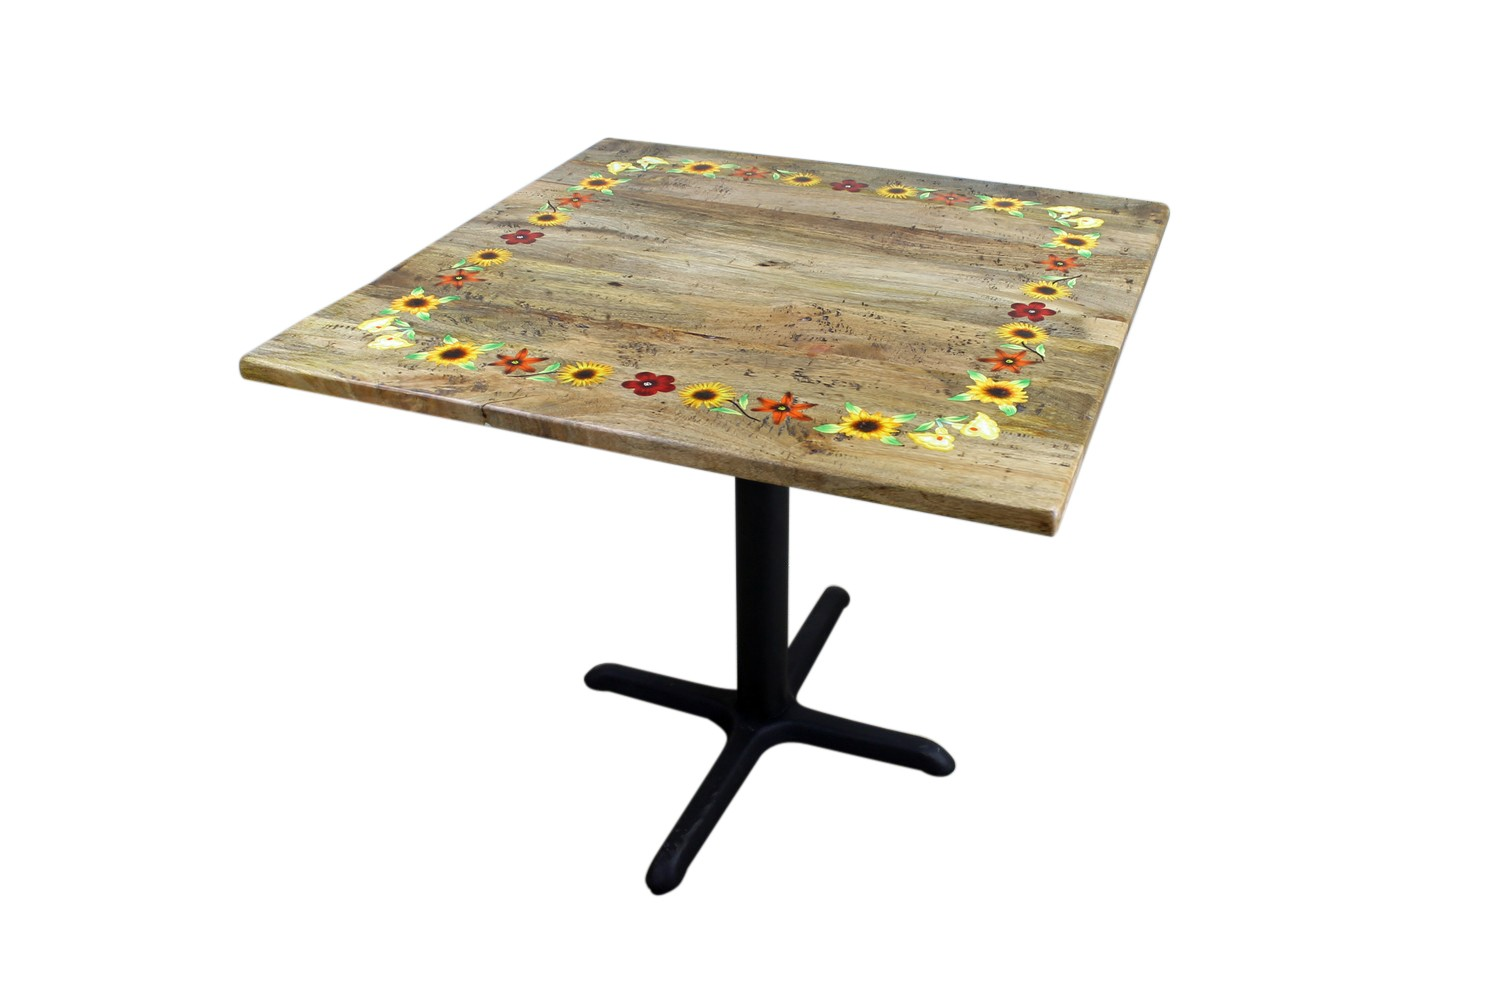 fiesta hand painted rustic dining room table mexican on hand painted dining room tables id=69308